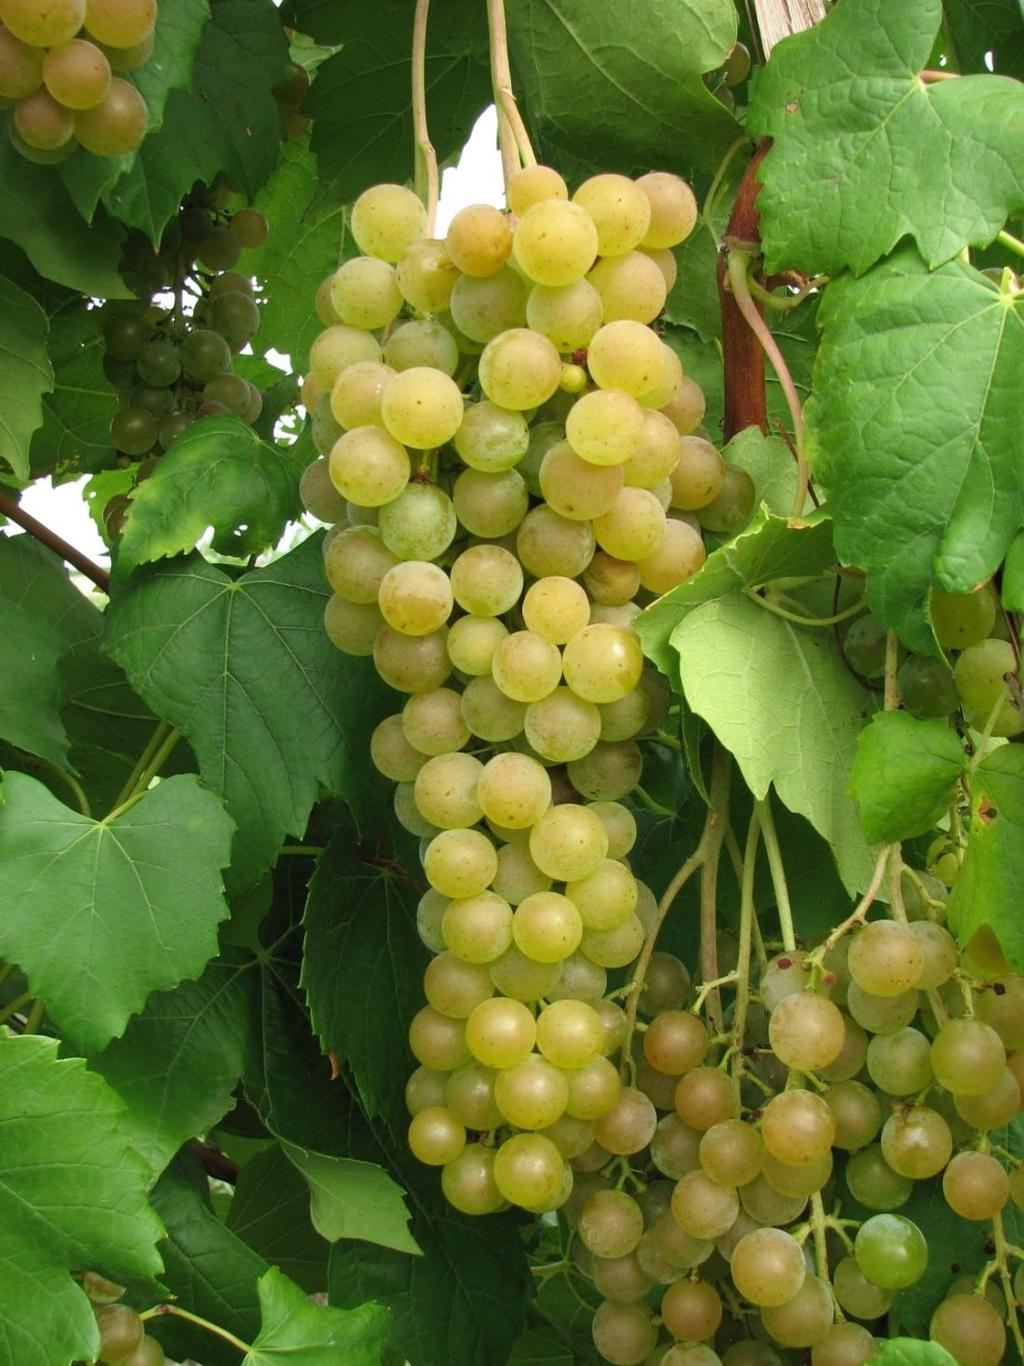 Aromella (NY 76.0844.24) NY76.0844.24 - (Traminette x Ravat 34) makes a top ranked floral, muscat wine. Own rooted vines have been highly productive, highly vigorous (24 lbs. of fruit/vine; 4.3 lbs.